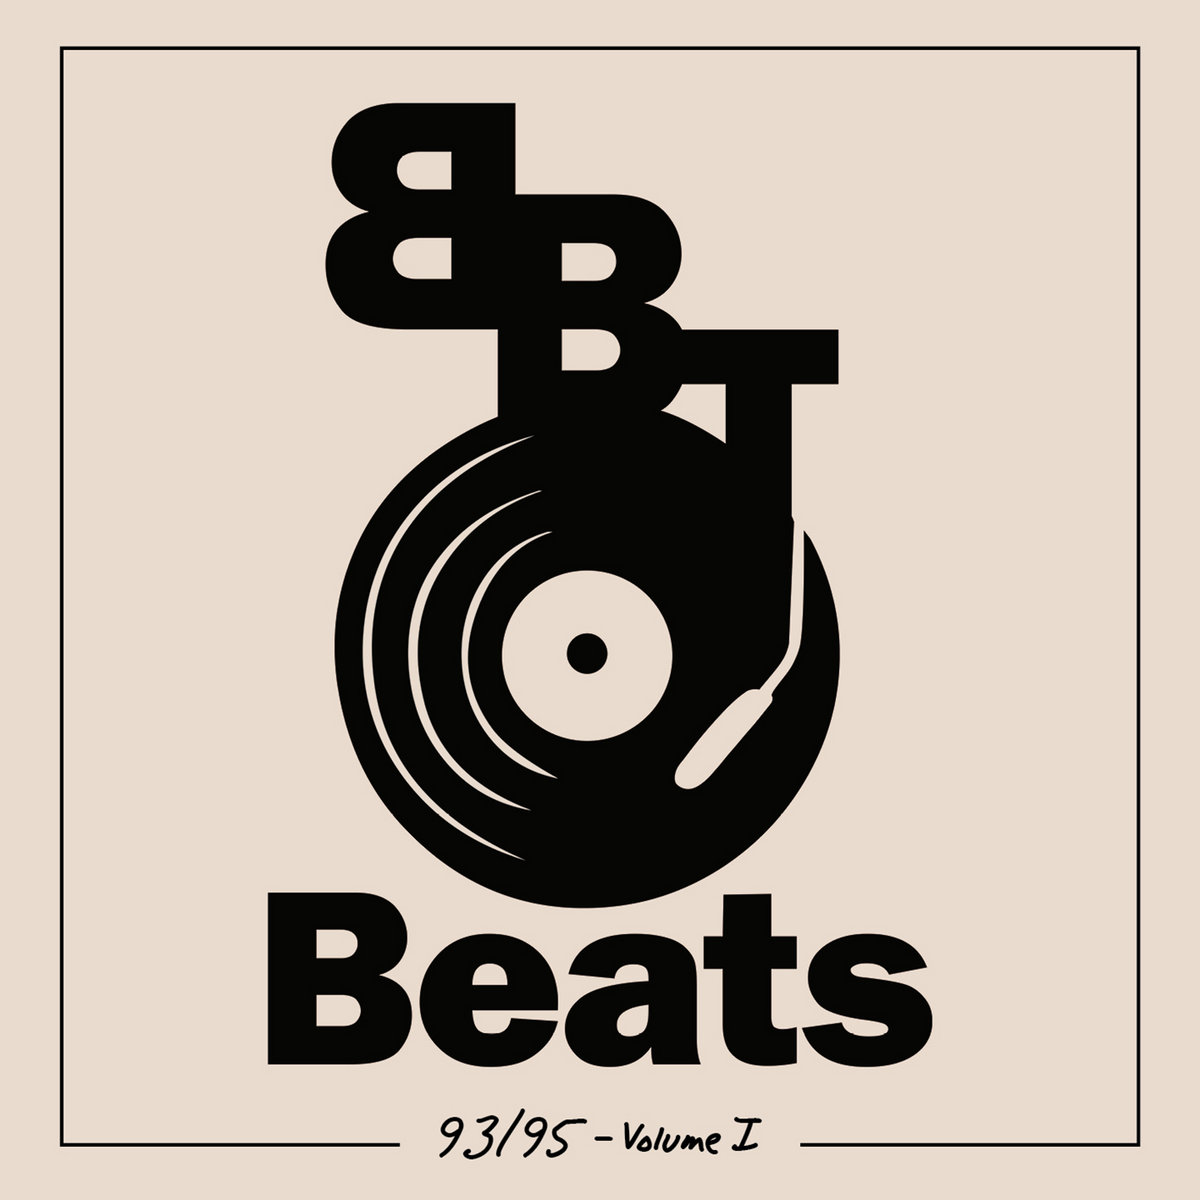 93/95 (Oldschool Beats) PROD BY BBTBEATS FREE DOWNLOAD FREE